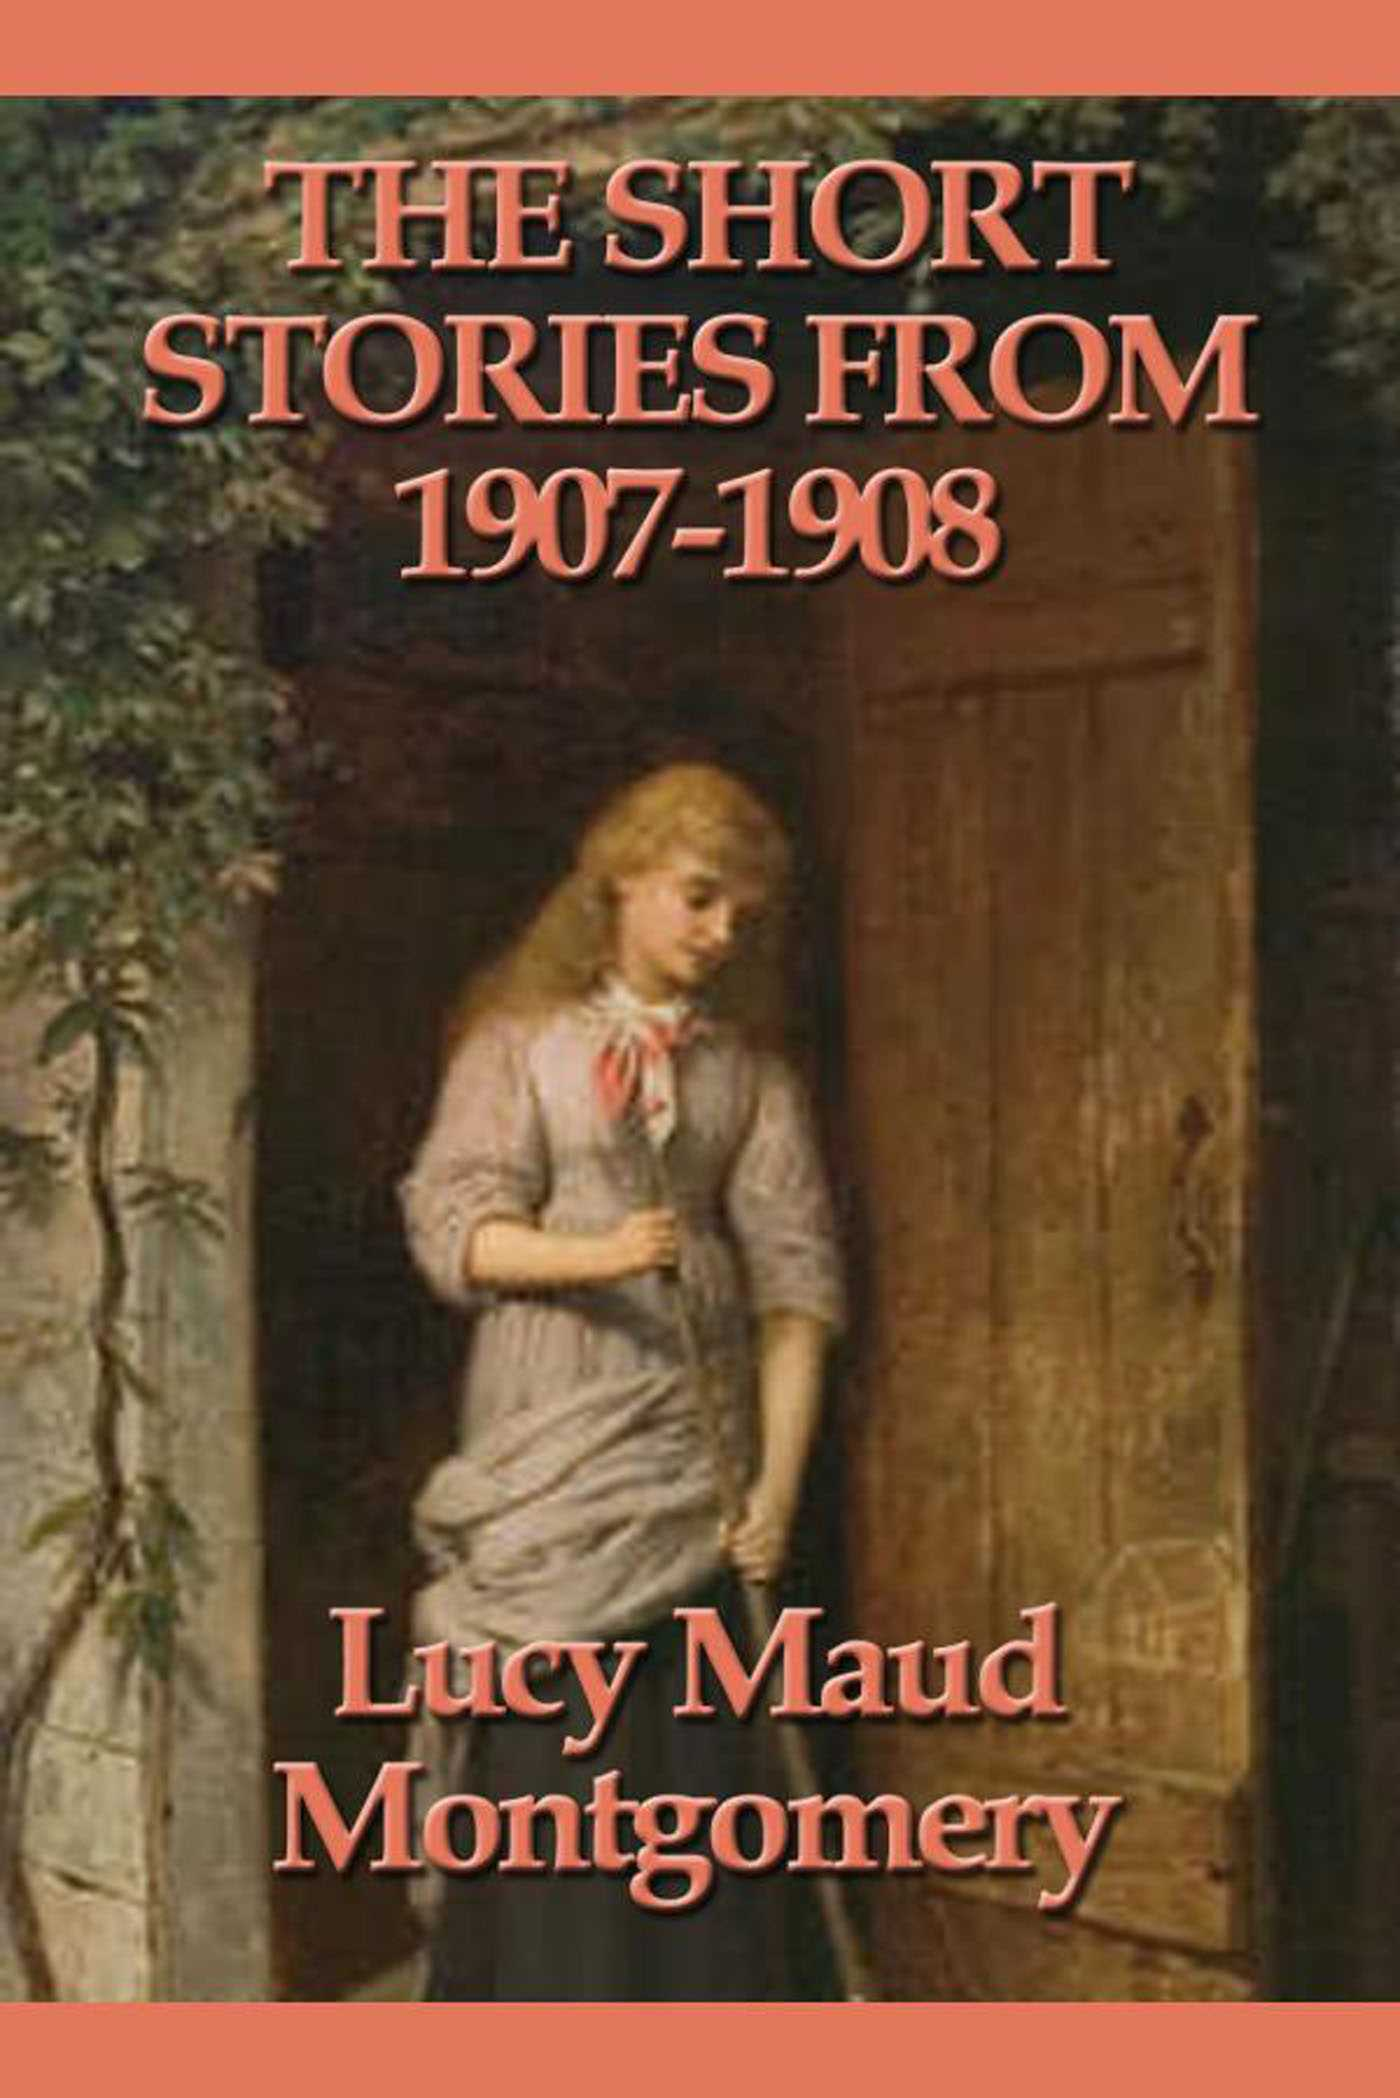 The Short Stories From 1907 1908 Ebook By Lucy Maud